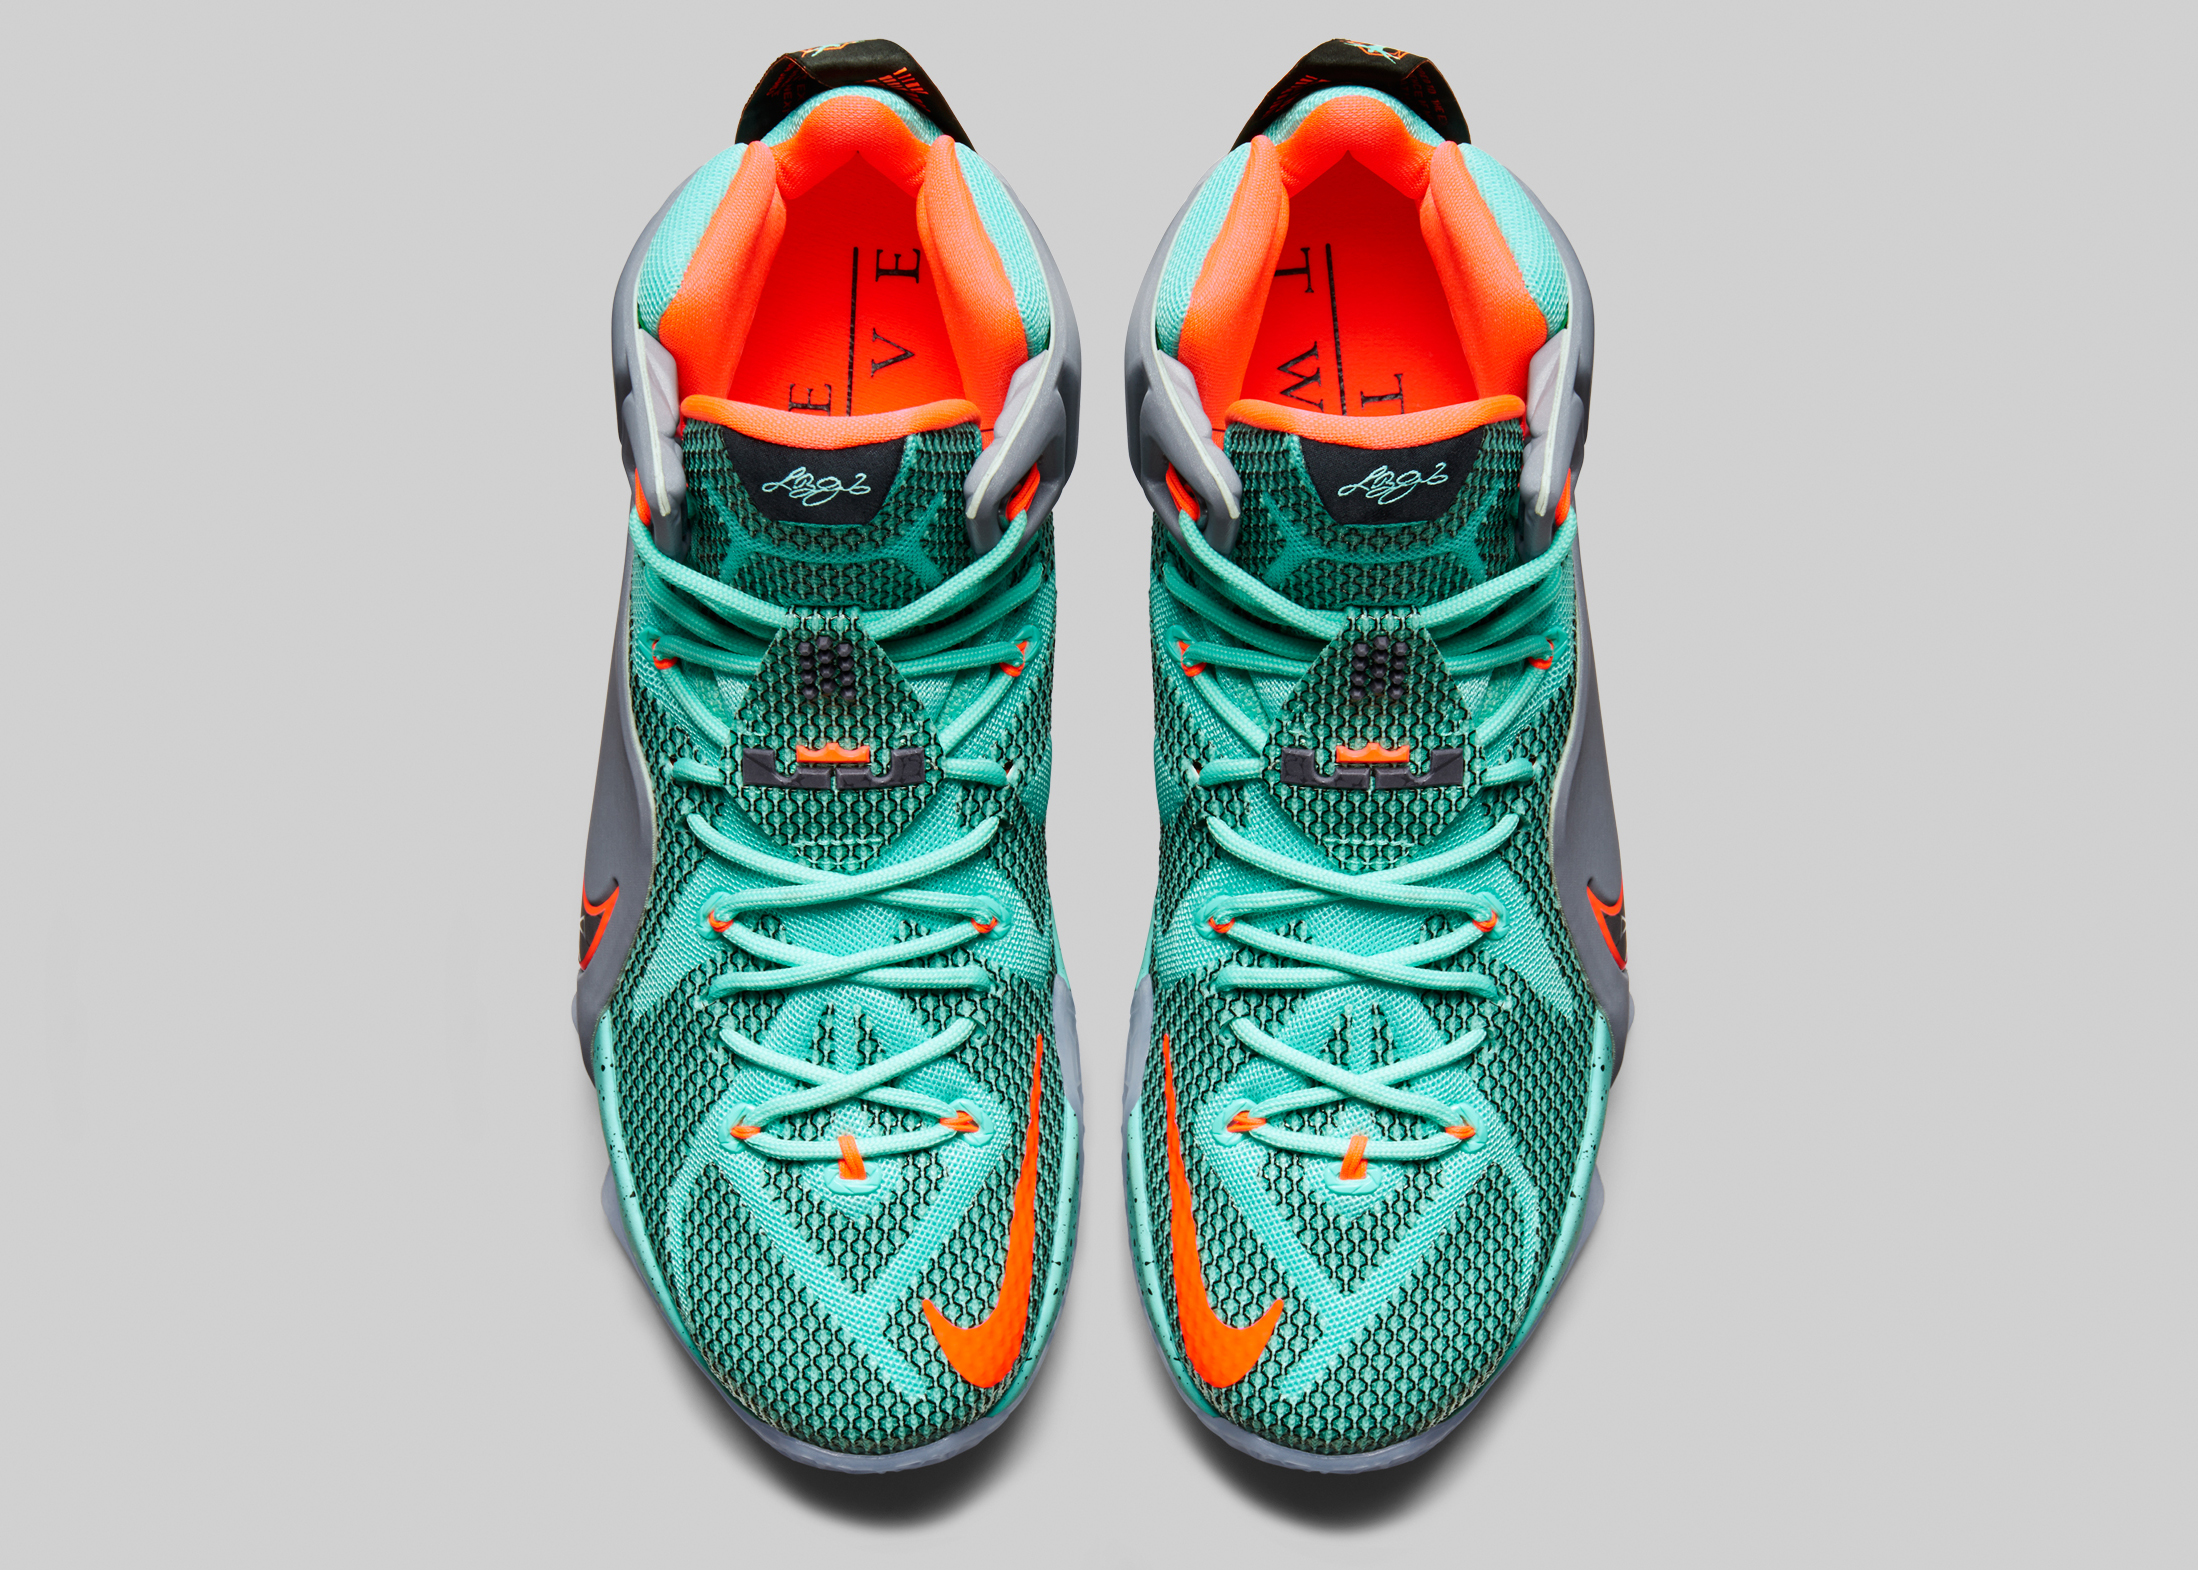 Nike LeBron XIII Low Men's Basketball Shoes